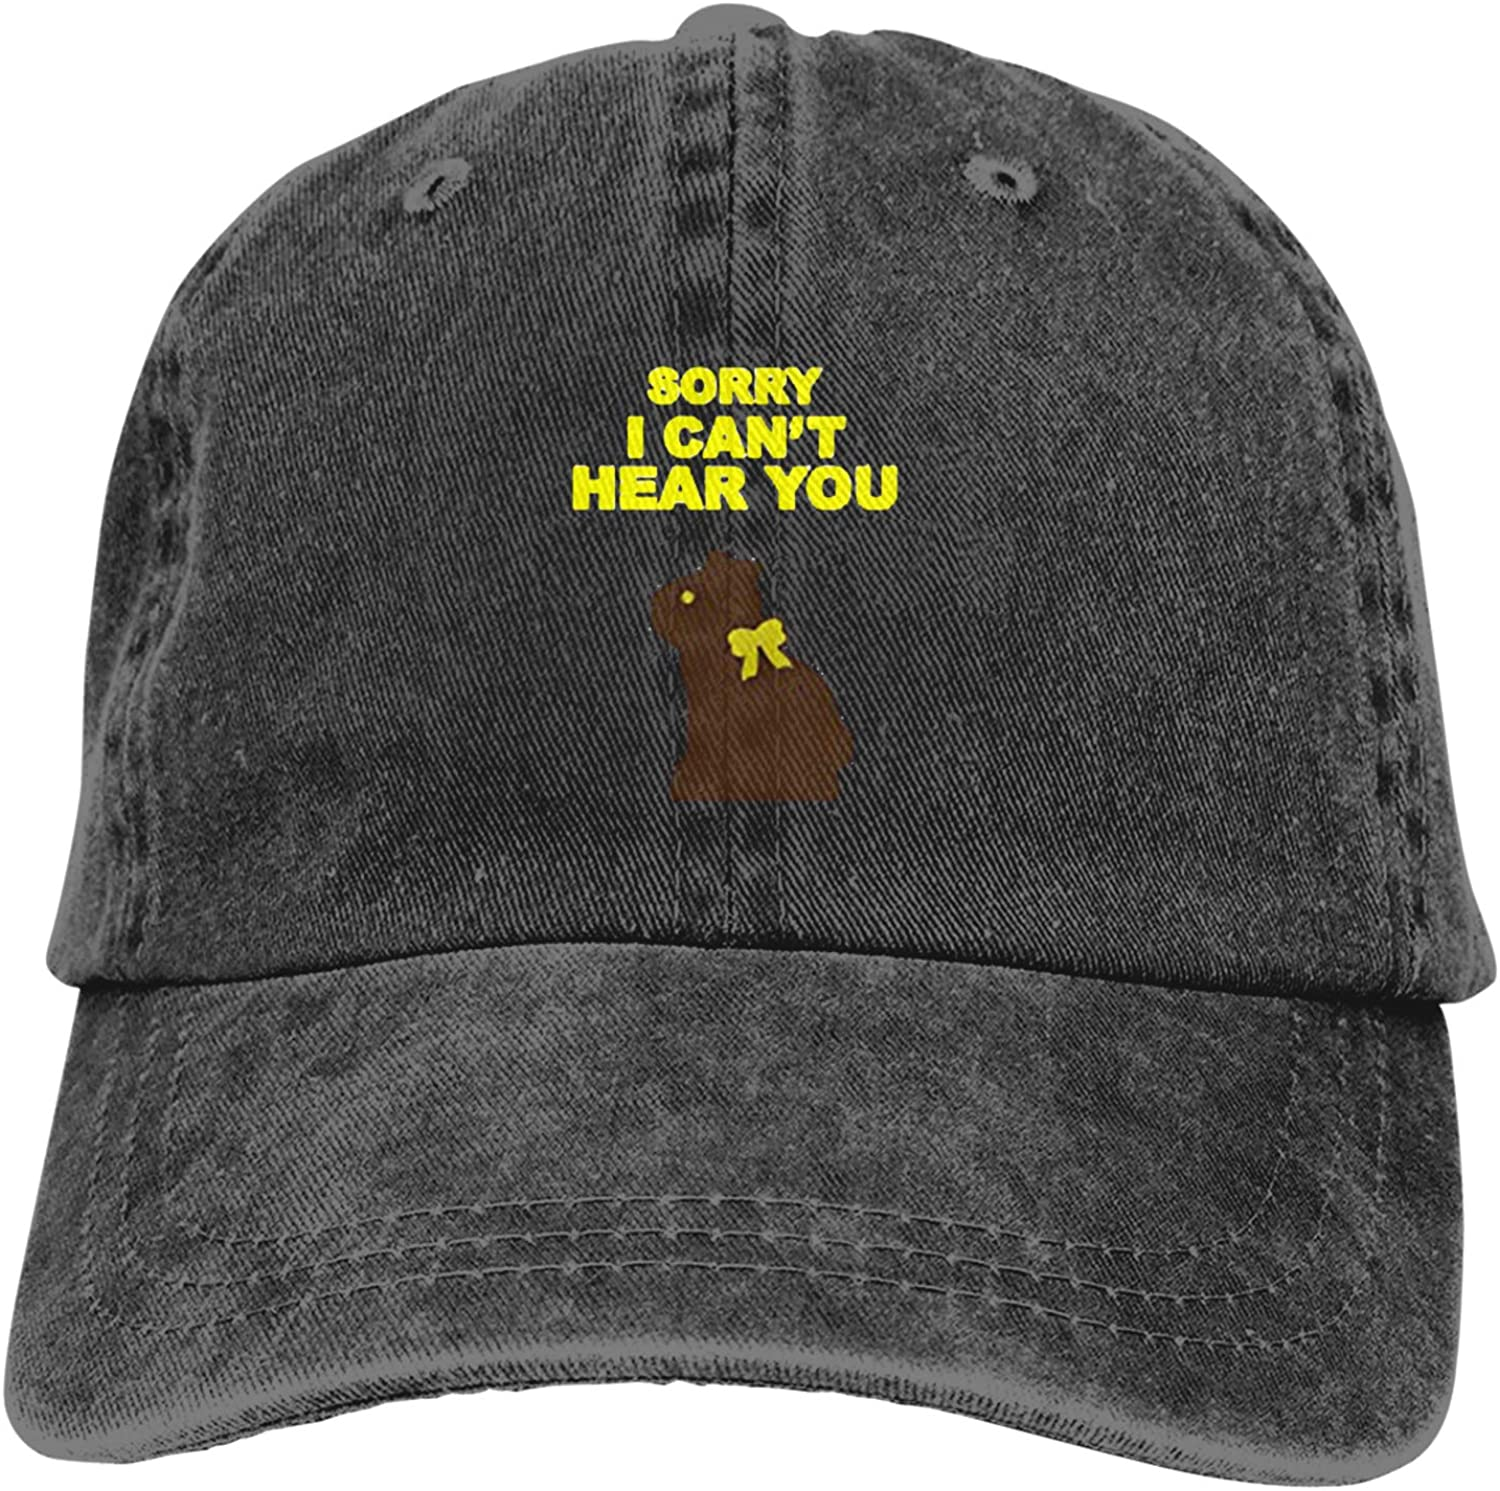 WAYMAY Sorry I Can't Hear You Unisex Adjustable Cowboy Hat Adult Cotton Baseball Cap